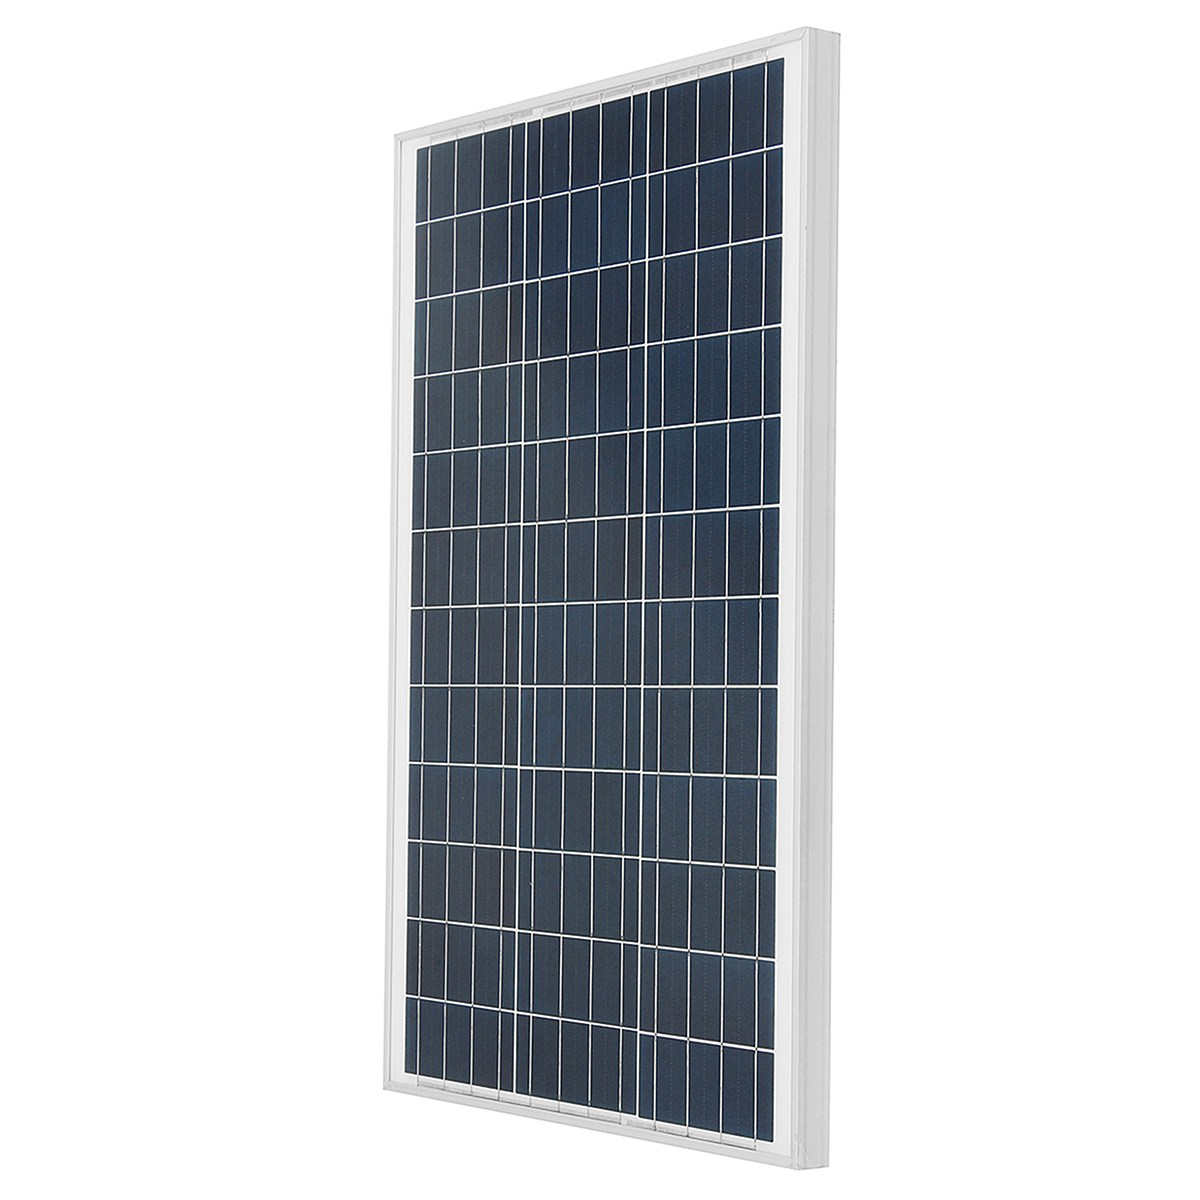 LEORY 60w 18v Solar Panel With Glass Bearing Plate Polycrystalline Silicon Solar System Supply Suitable For Car Battery